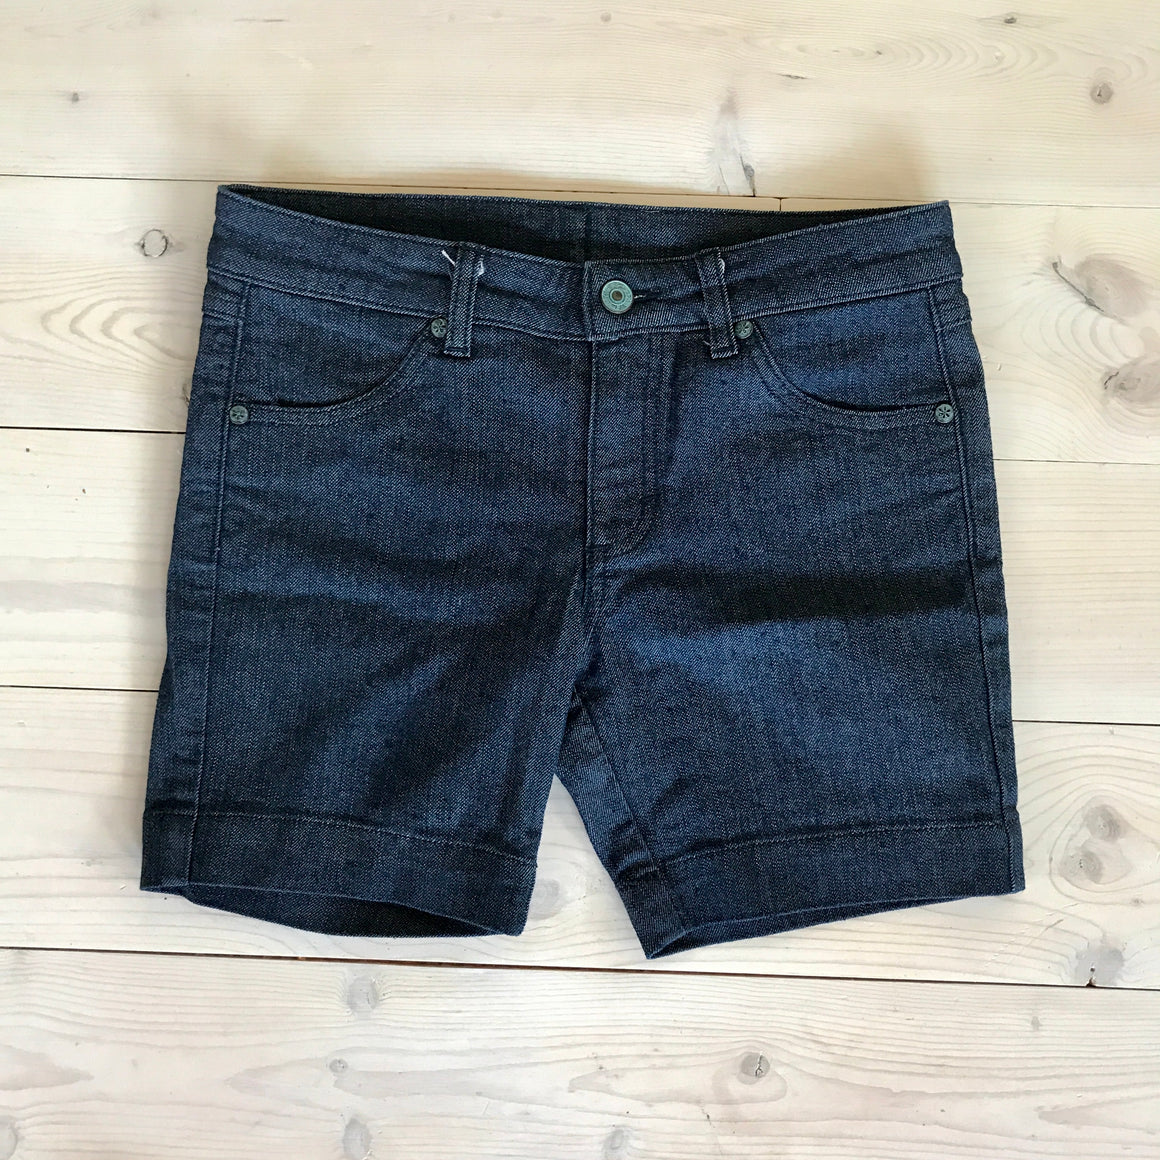 Denim Short - Spring 16 Sample - Size 14